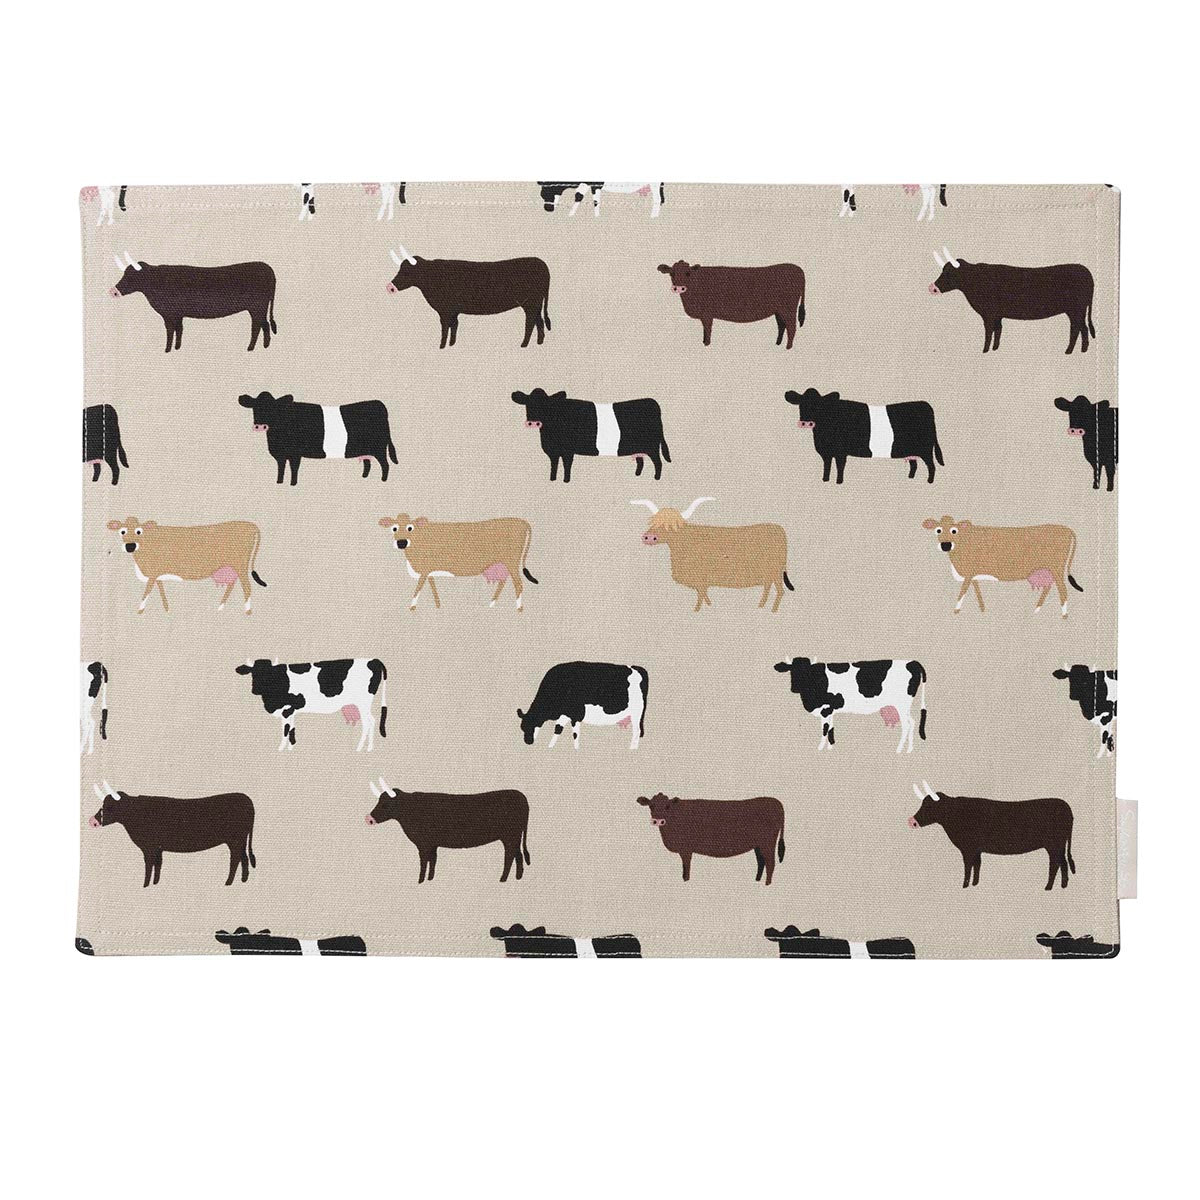 Cows Fabric Placemat